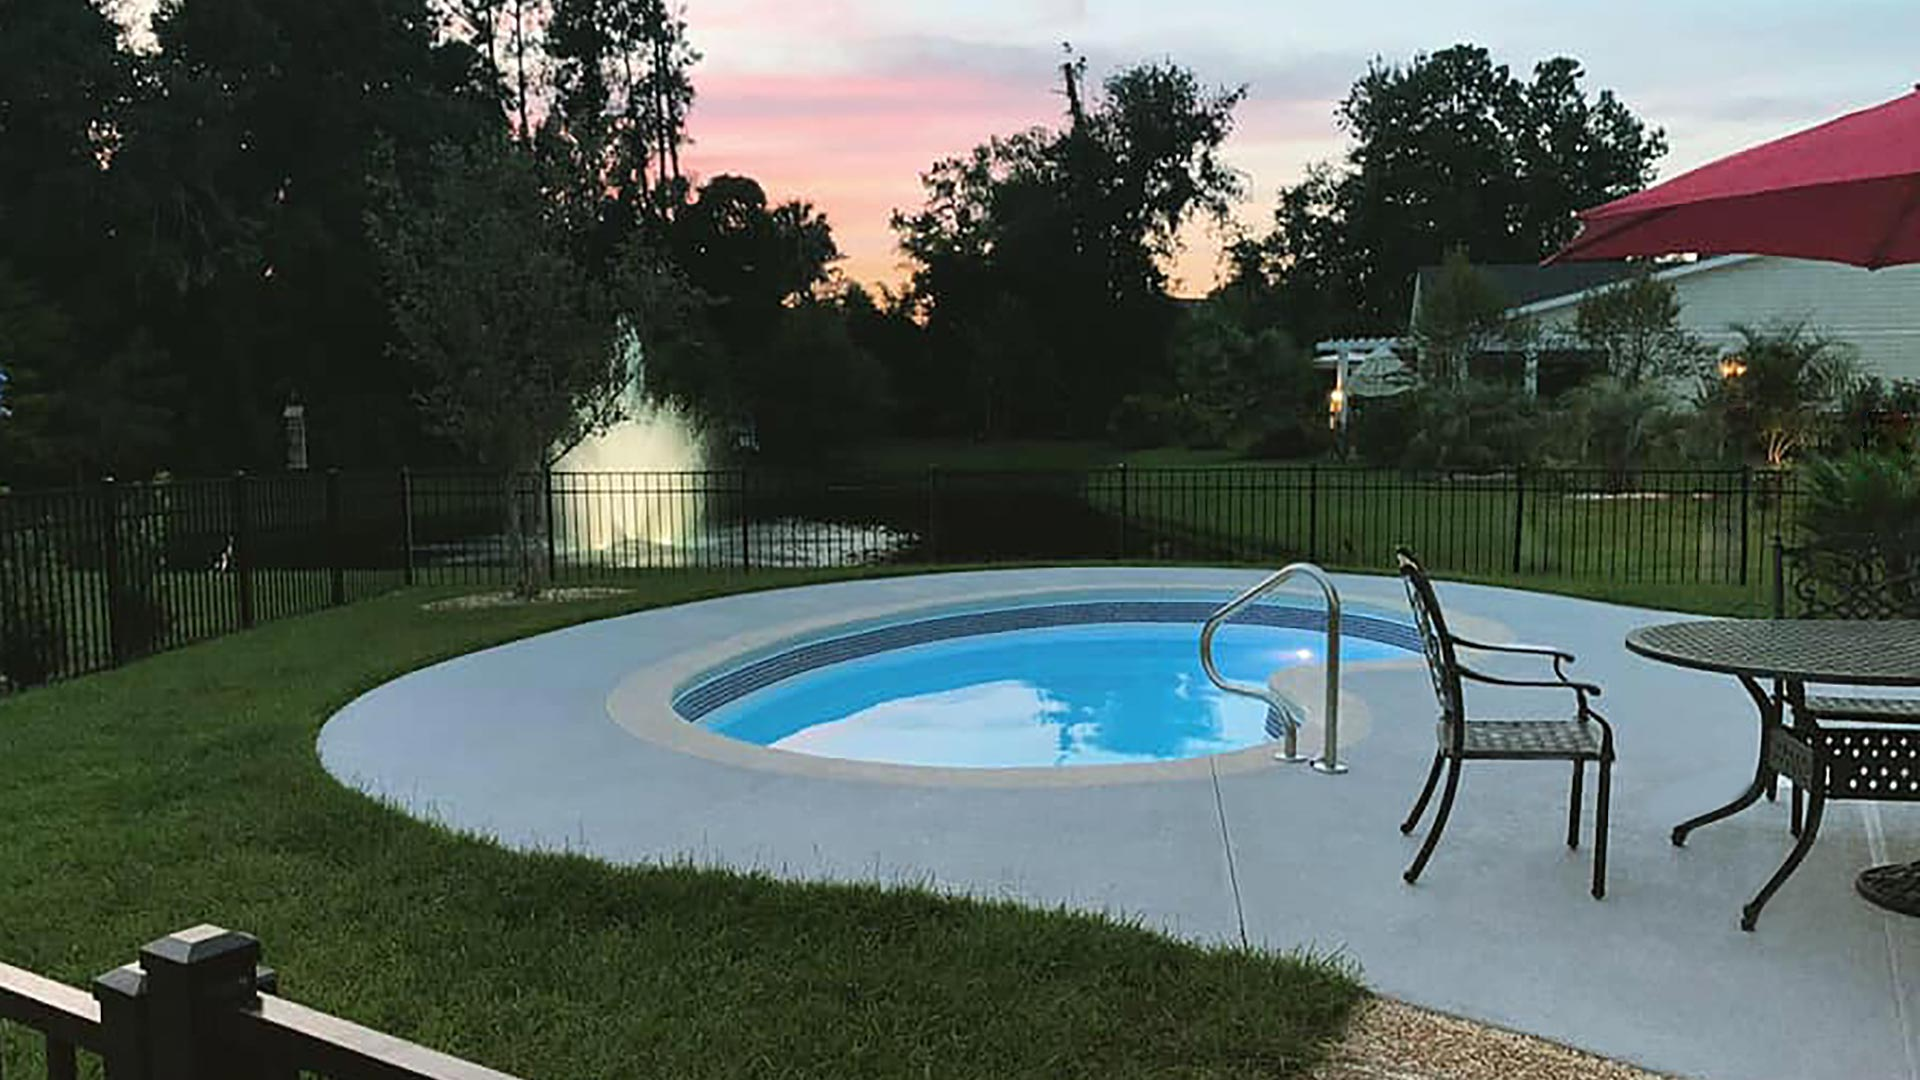 Alaglas Pools' June Bug model, a medium, freeform fiberglass pool in white